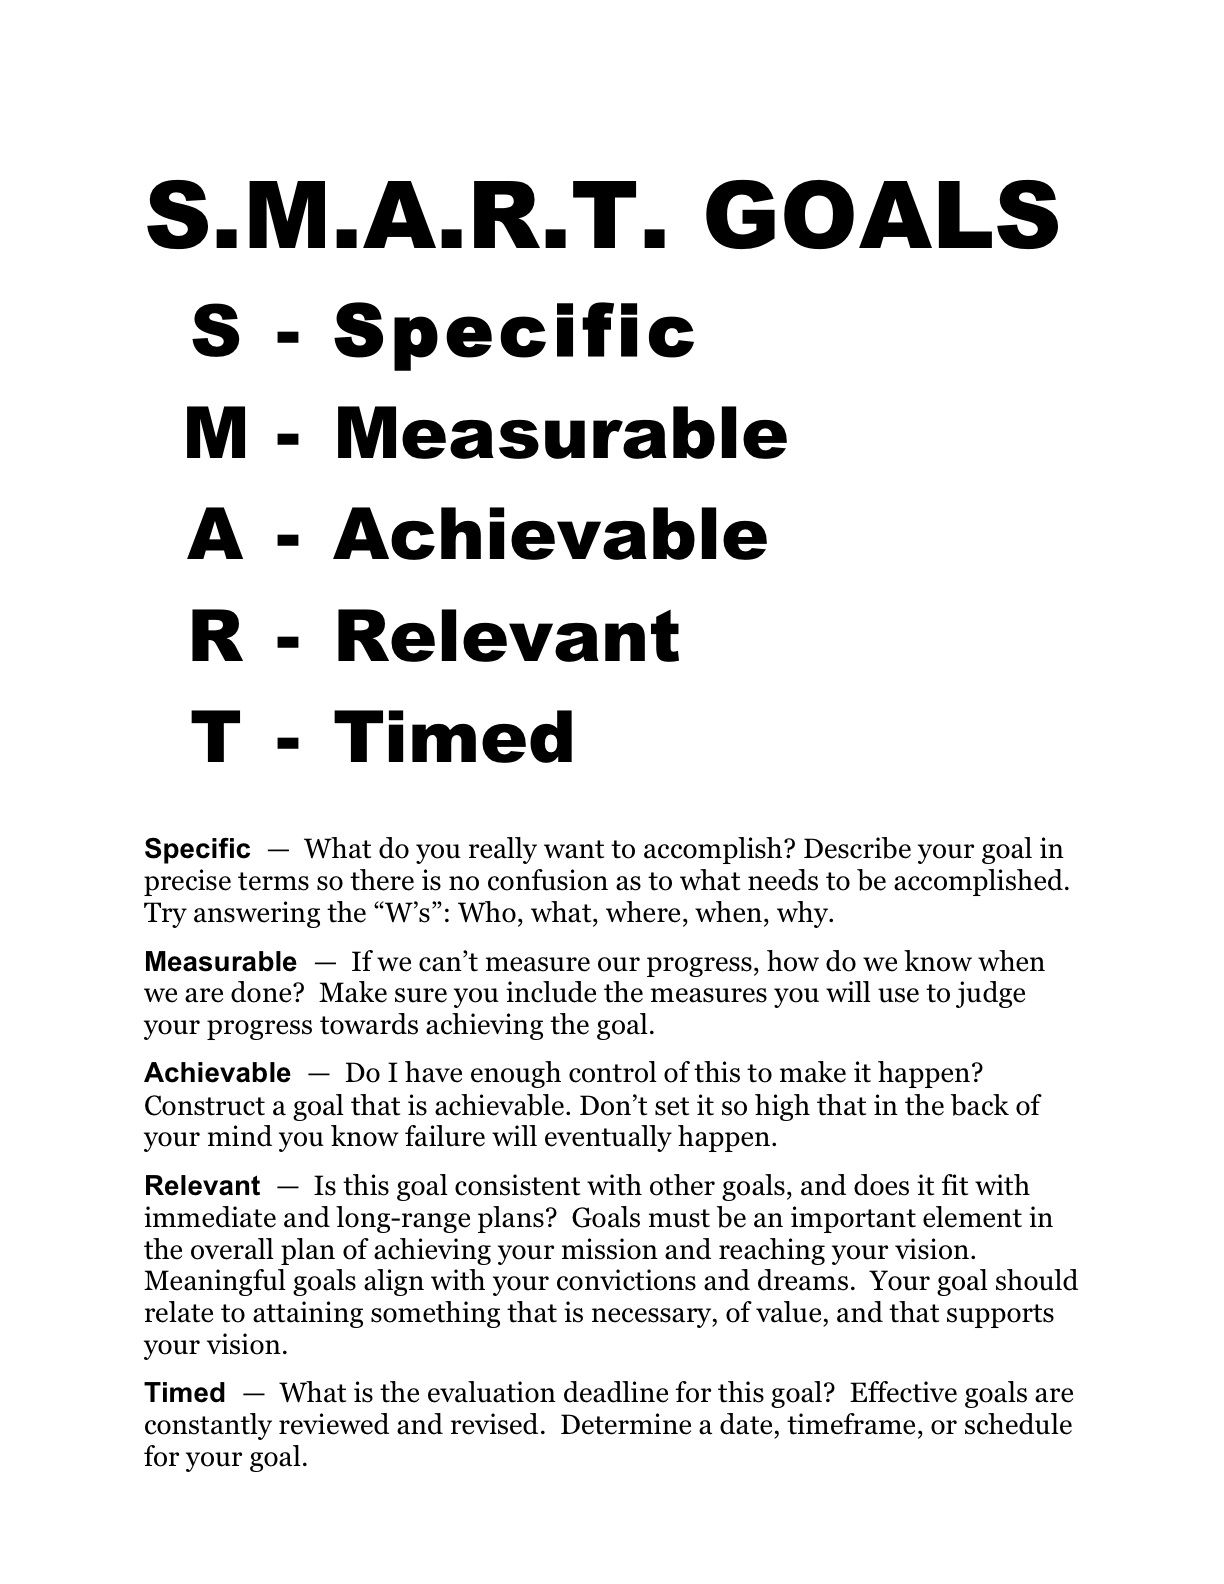 worksheet Smart Goals Worksheet For Students smart goals worksheet iep information pinterest goals